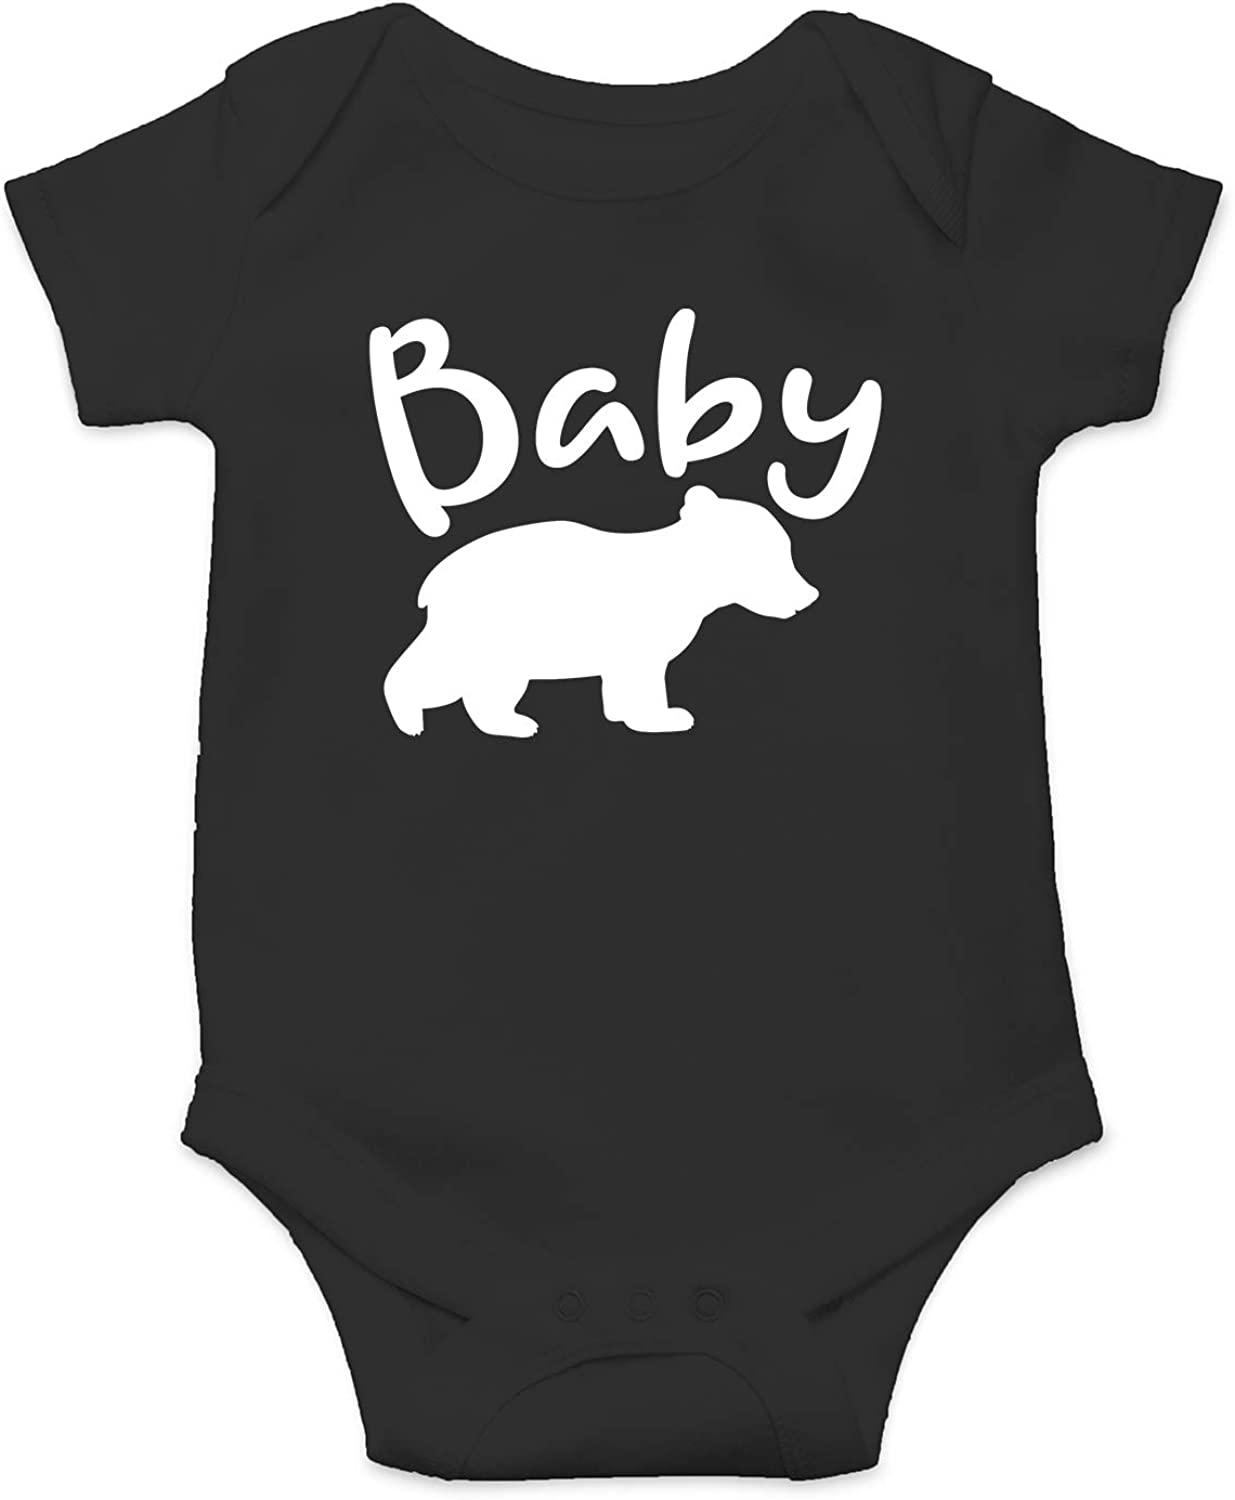 OFFicial site Baby Bear- Novelty Gift Max 85% OFF - Funny Creeper Cute One-Piece Infant B